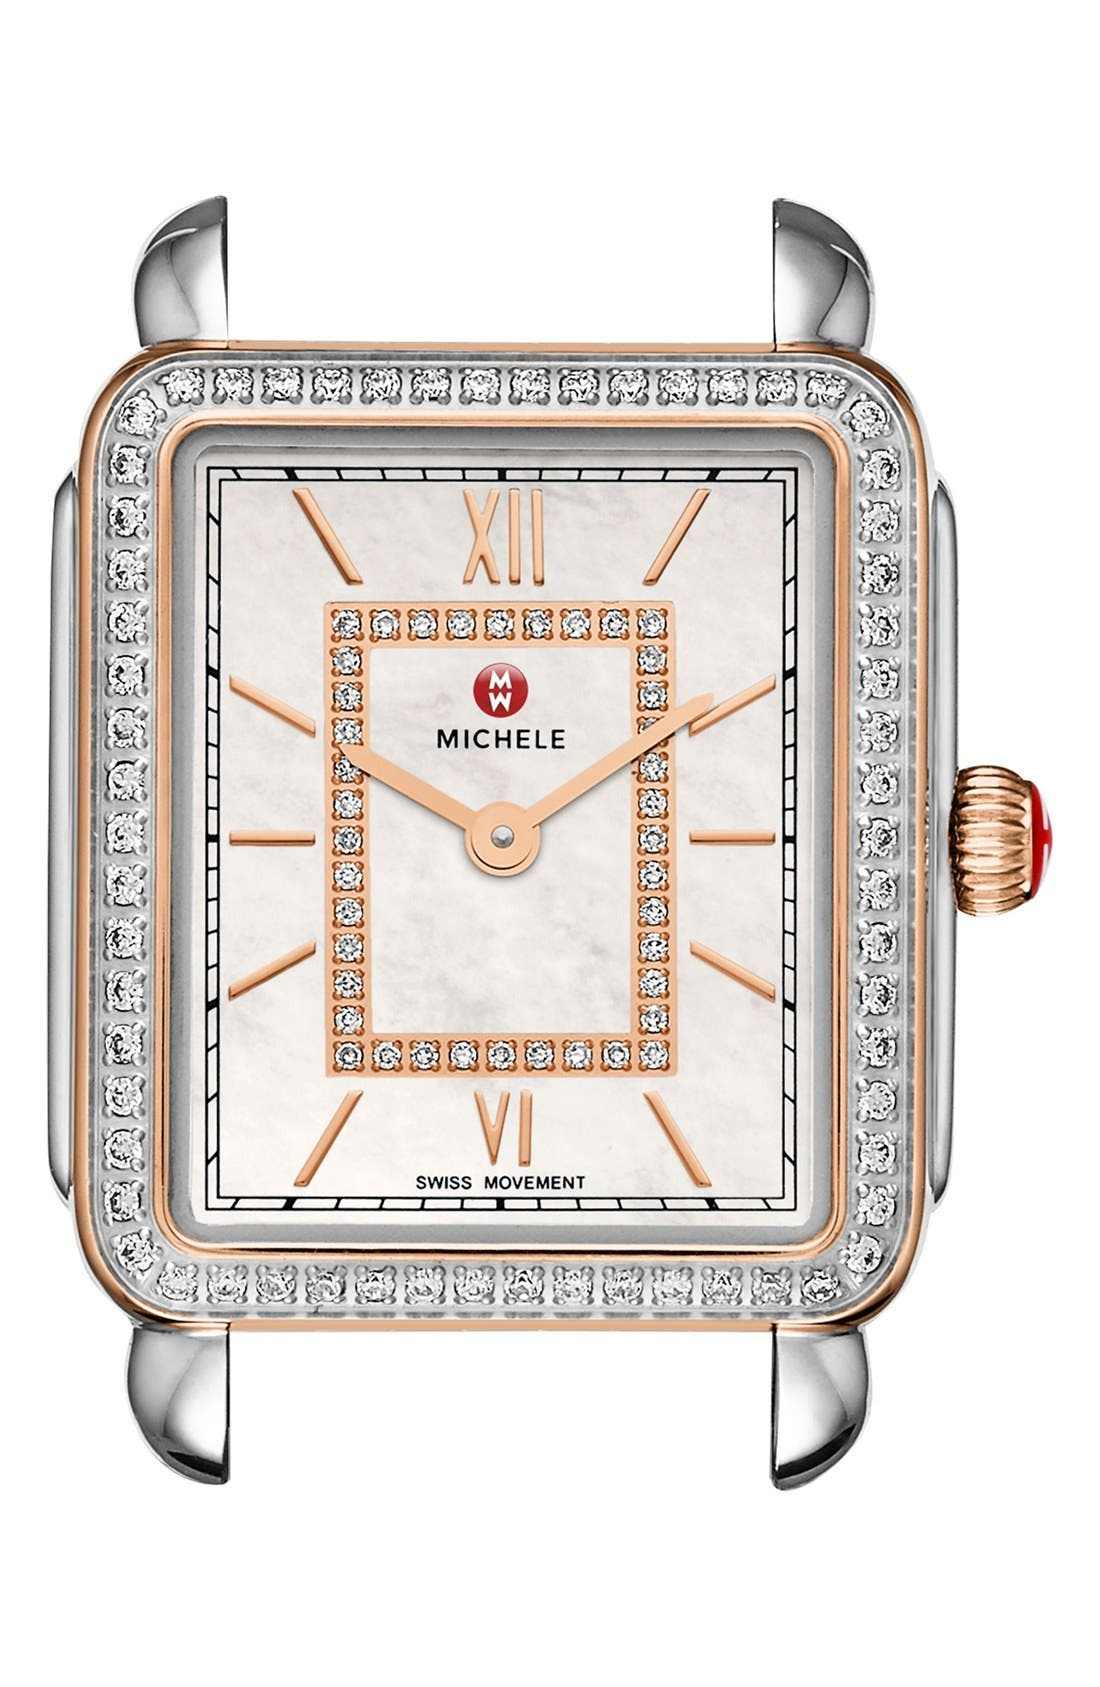 Alternate Image 1 Selected - MICHELE Deco II Mid Diamond Dial Watch Case, 26mm x 28mm